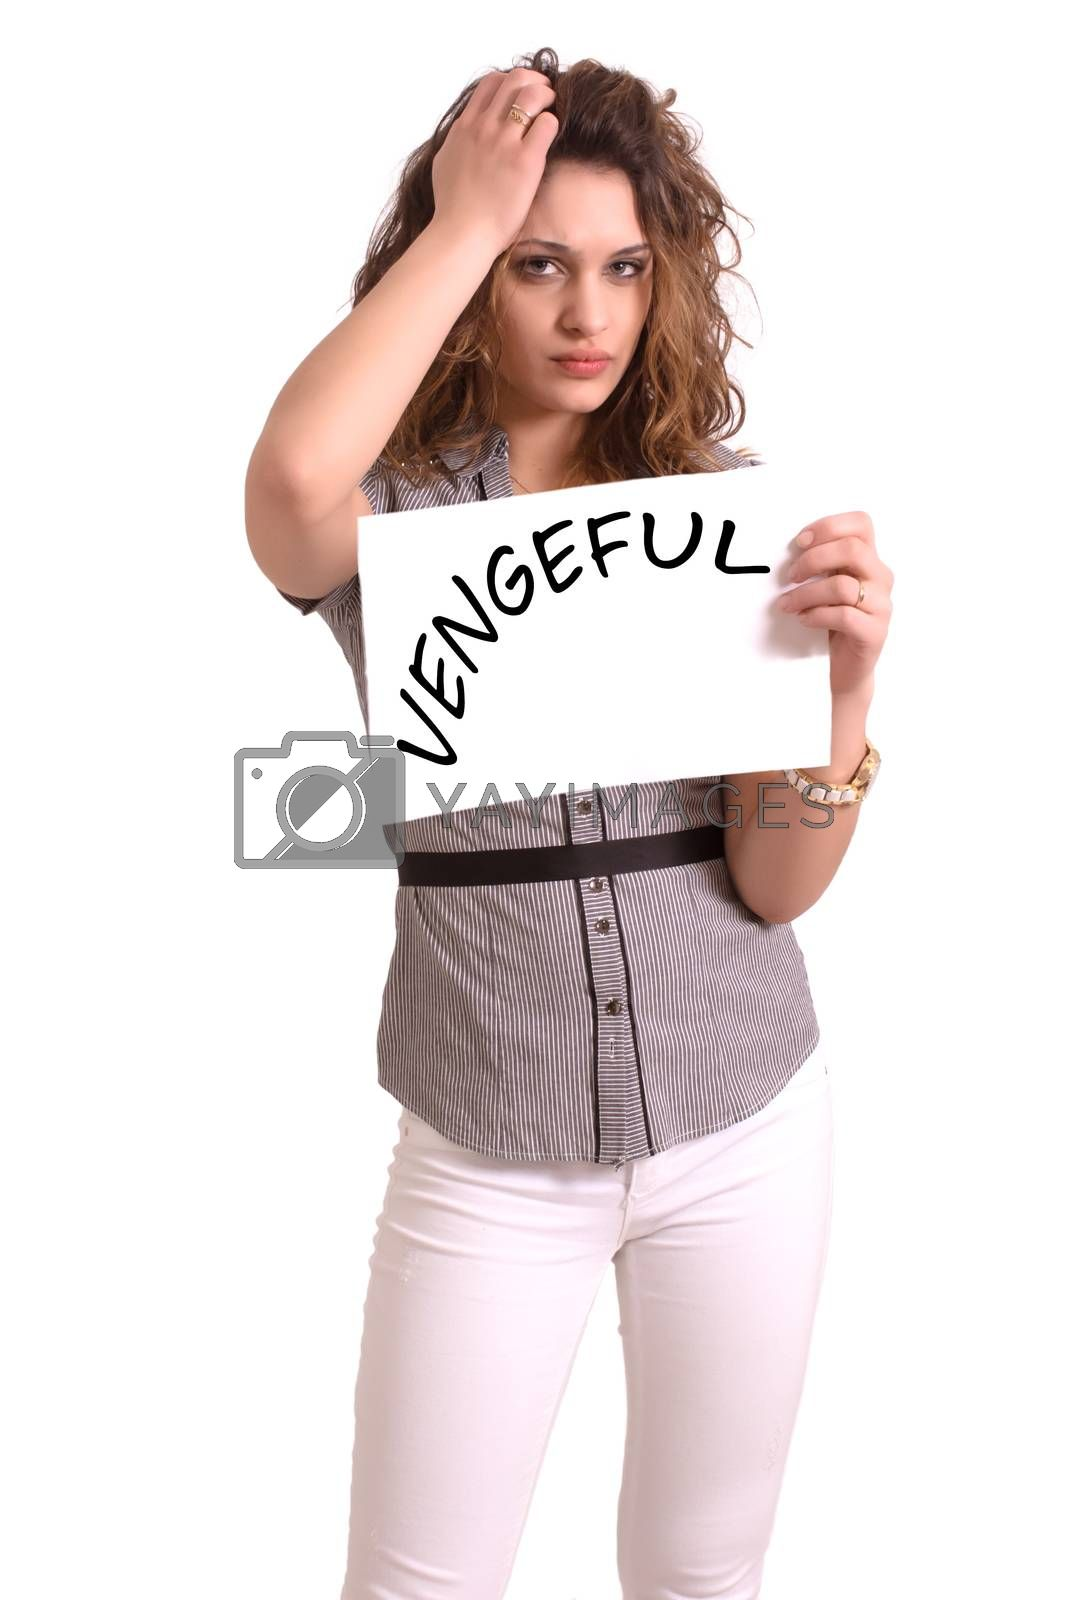 Young attractive woman holding paper with Vengeful text on white background